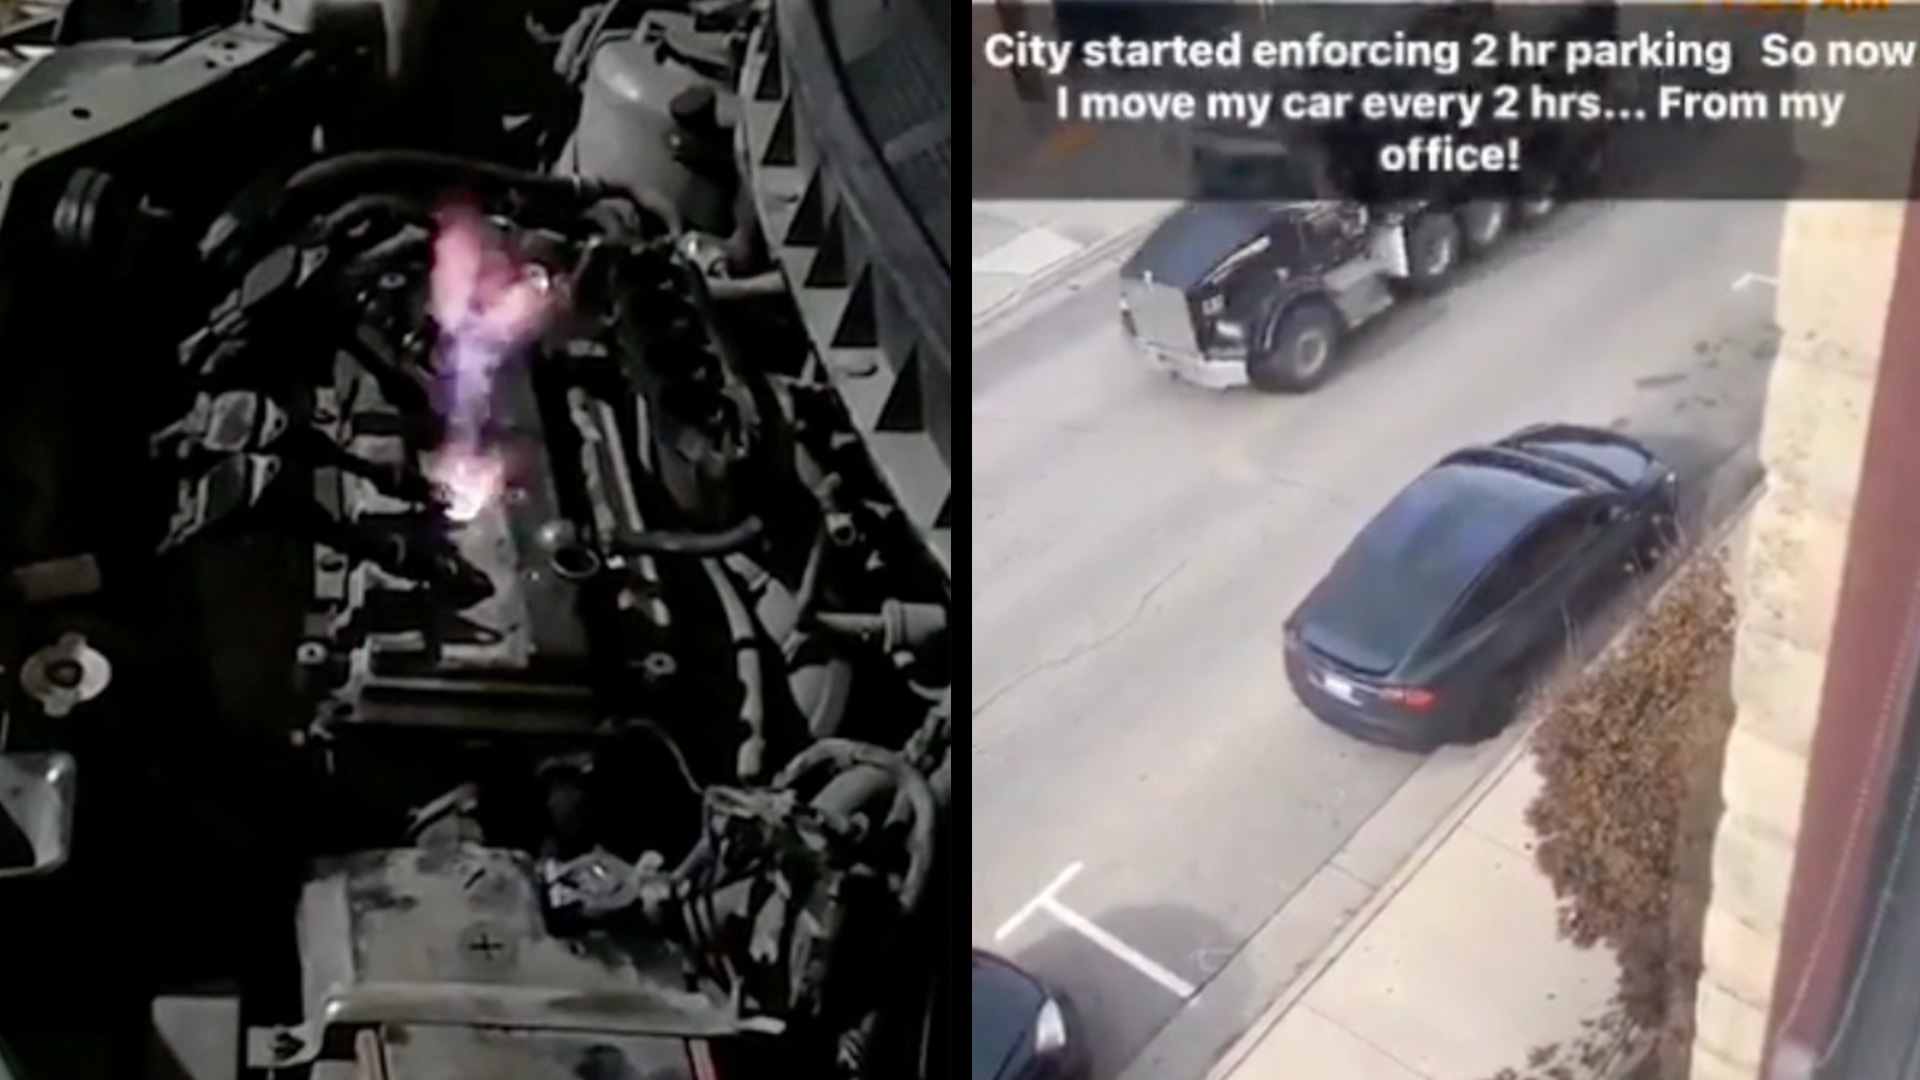 Should The Engine Be Shooting Fire? & Parking Hack Avoids Fine